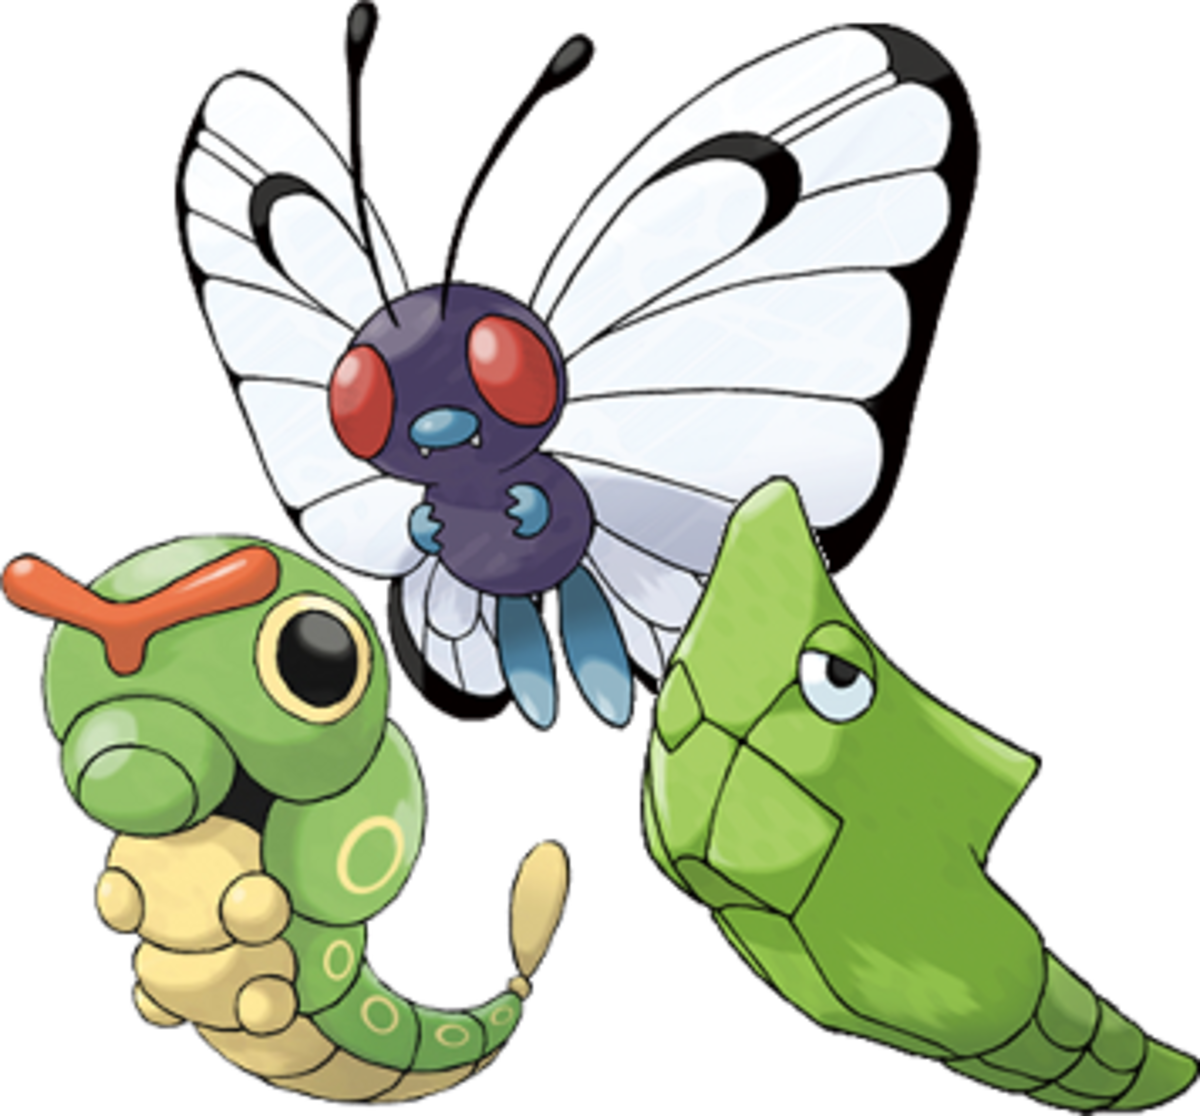 Pokemon Review: Butterfree and Beedrill